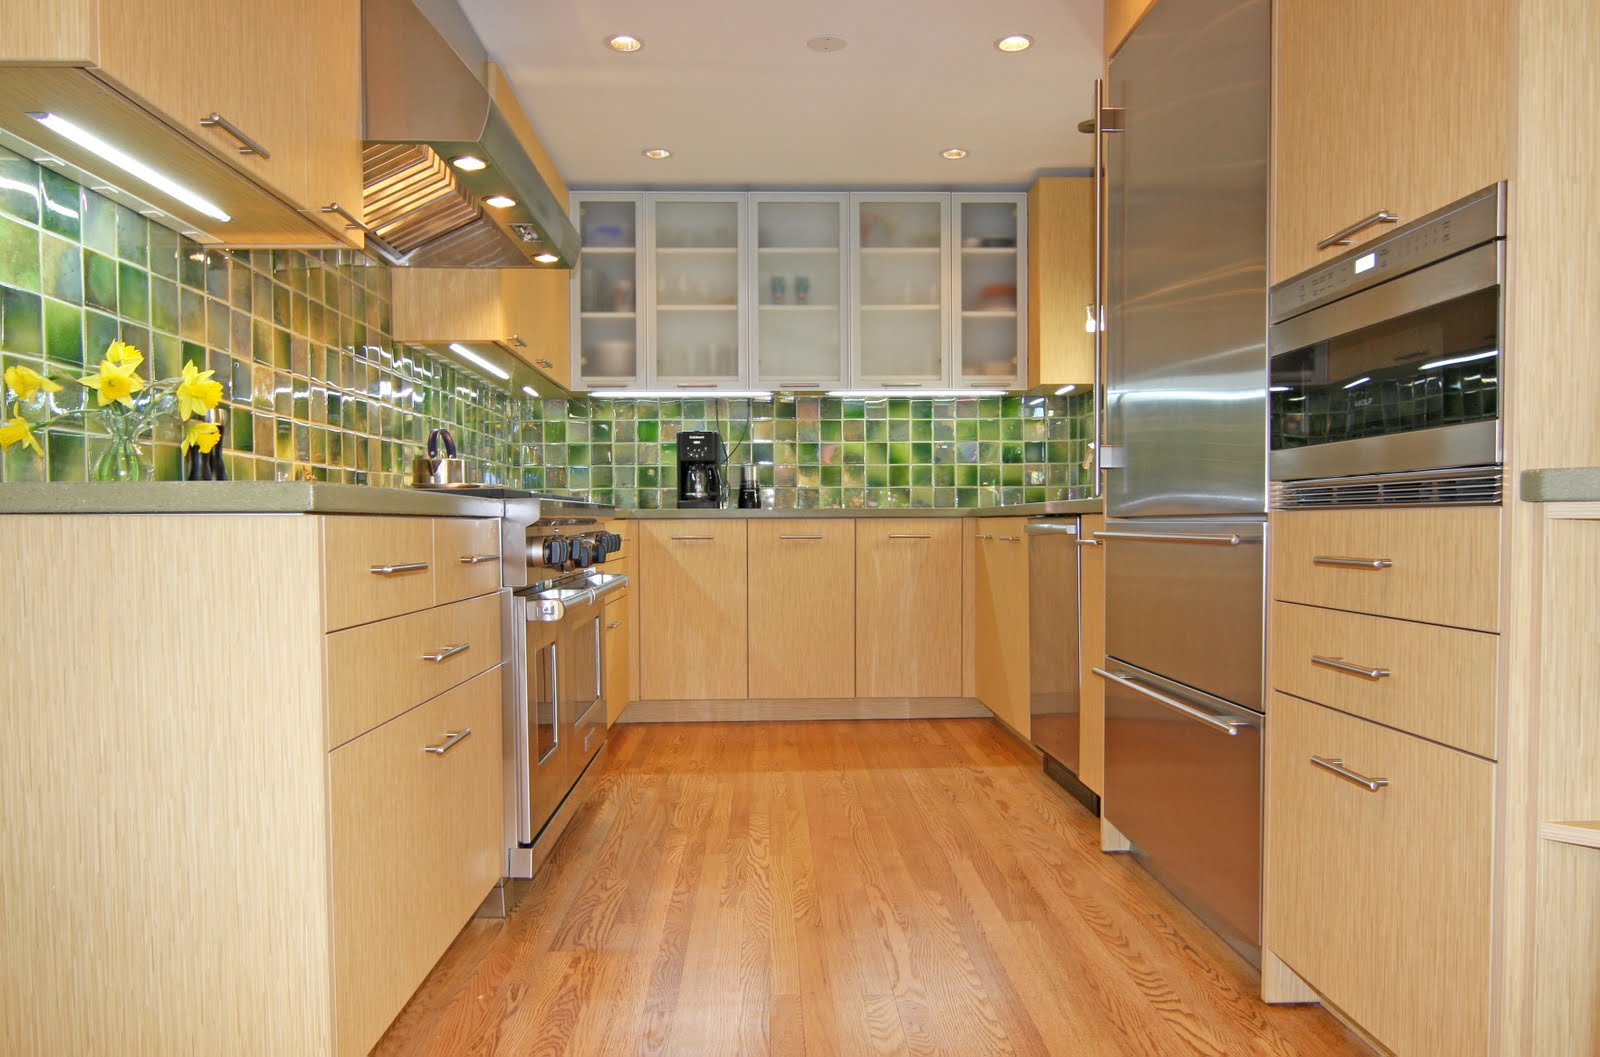 galley kitchen remodeling ideas galley kitchen remodel ideas galley kitchen layout ideas